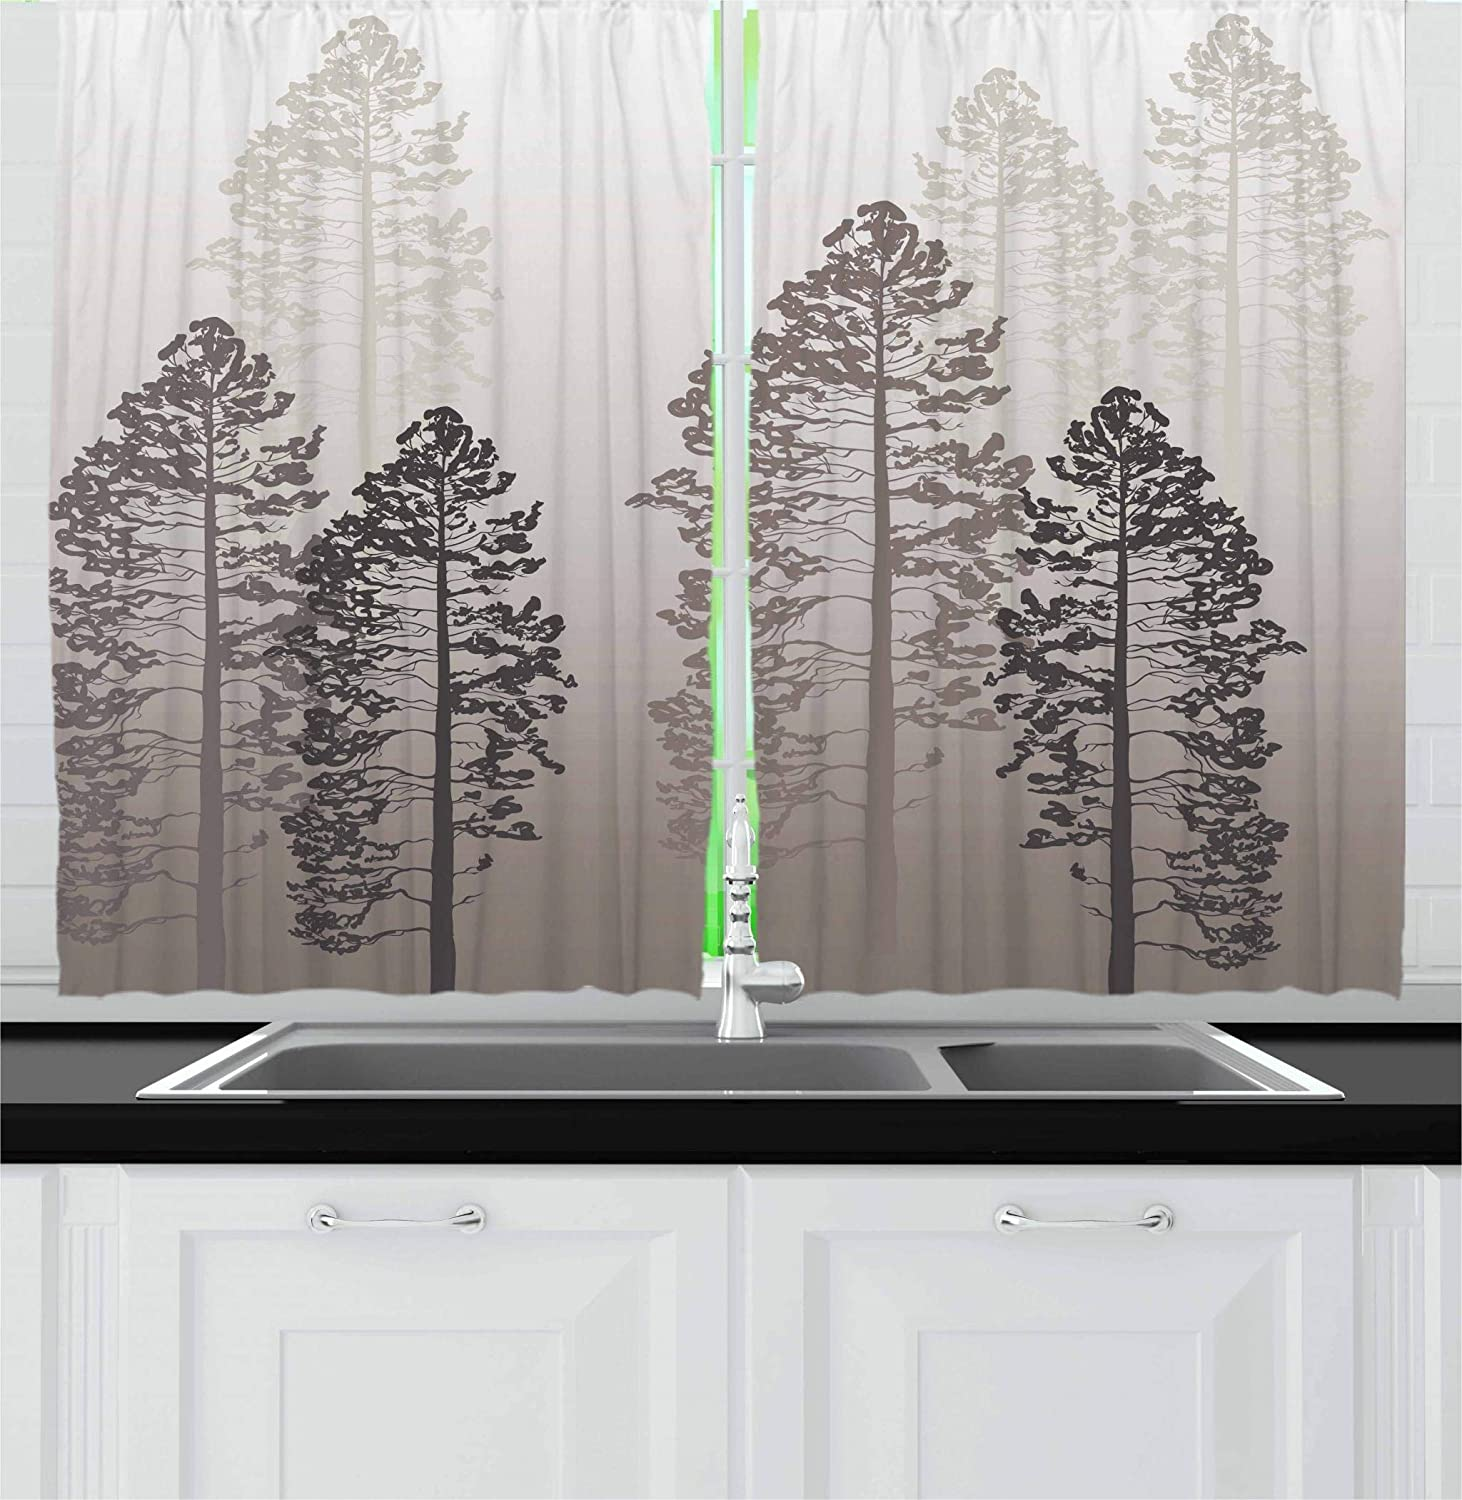 Ambesonne Country Kitchen Curtains, Pine Trees in The Forest on Foggy Seem Ombre Backdrop Wildlife Adventure Artwork, Window Drapes 2 Panel Set for Kitchen Cafe, 55 W X 39 L Inches, Warm Taupe